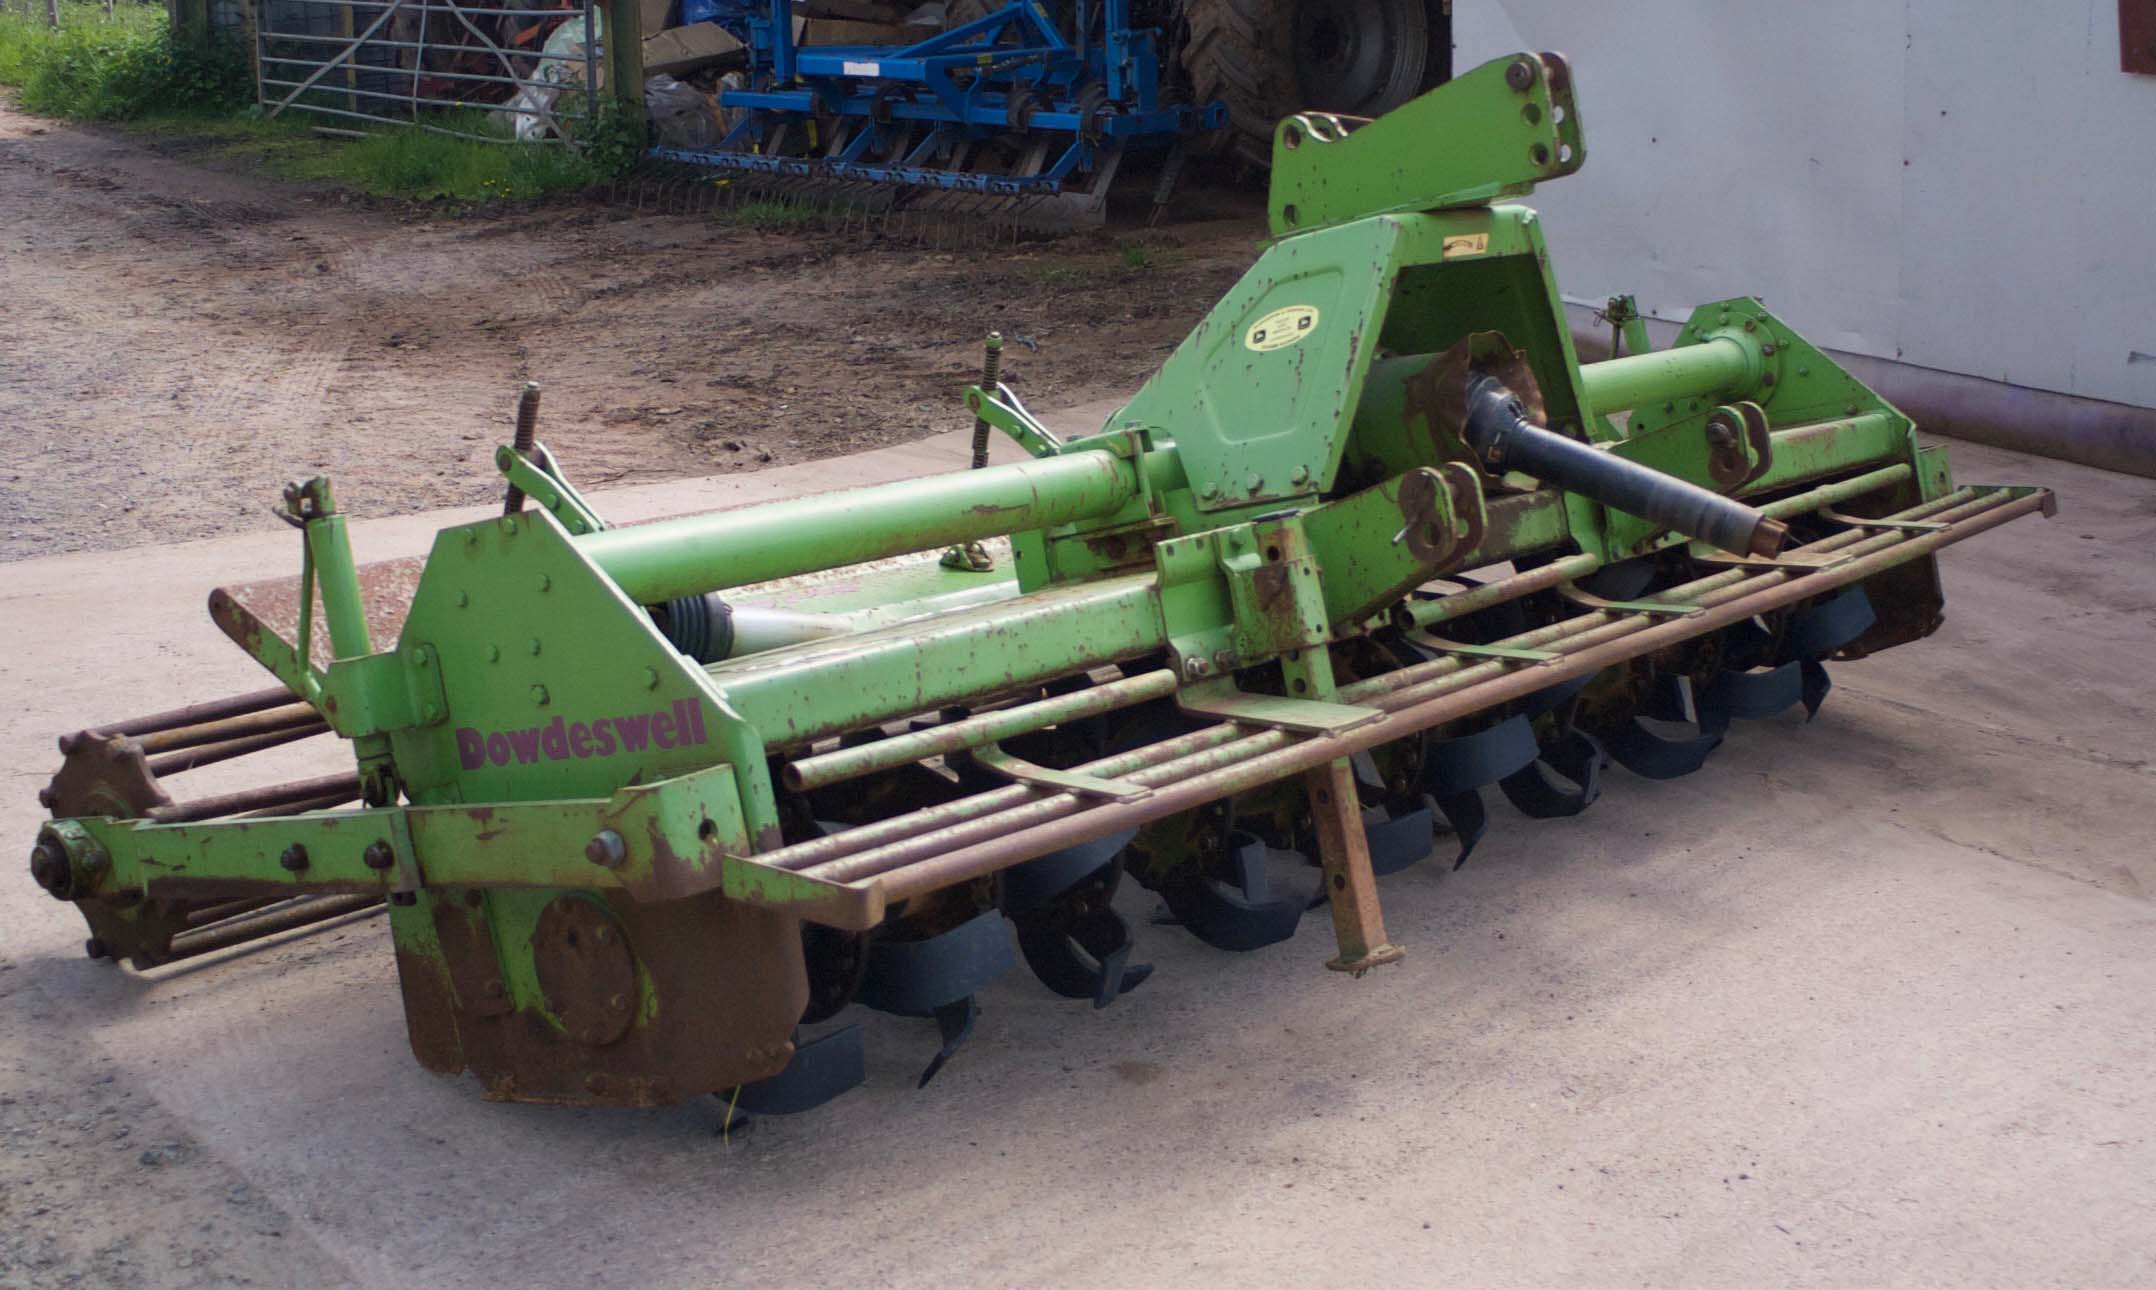 Dowdeswell Rotavator 130 c/w cage roller, new blades. 3.3m working width